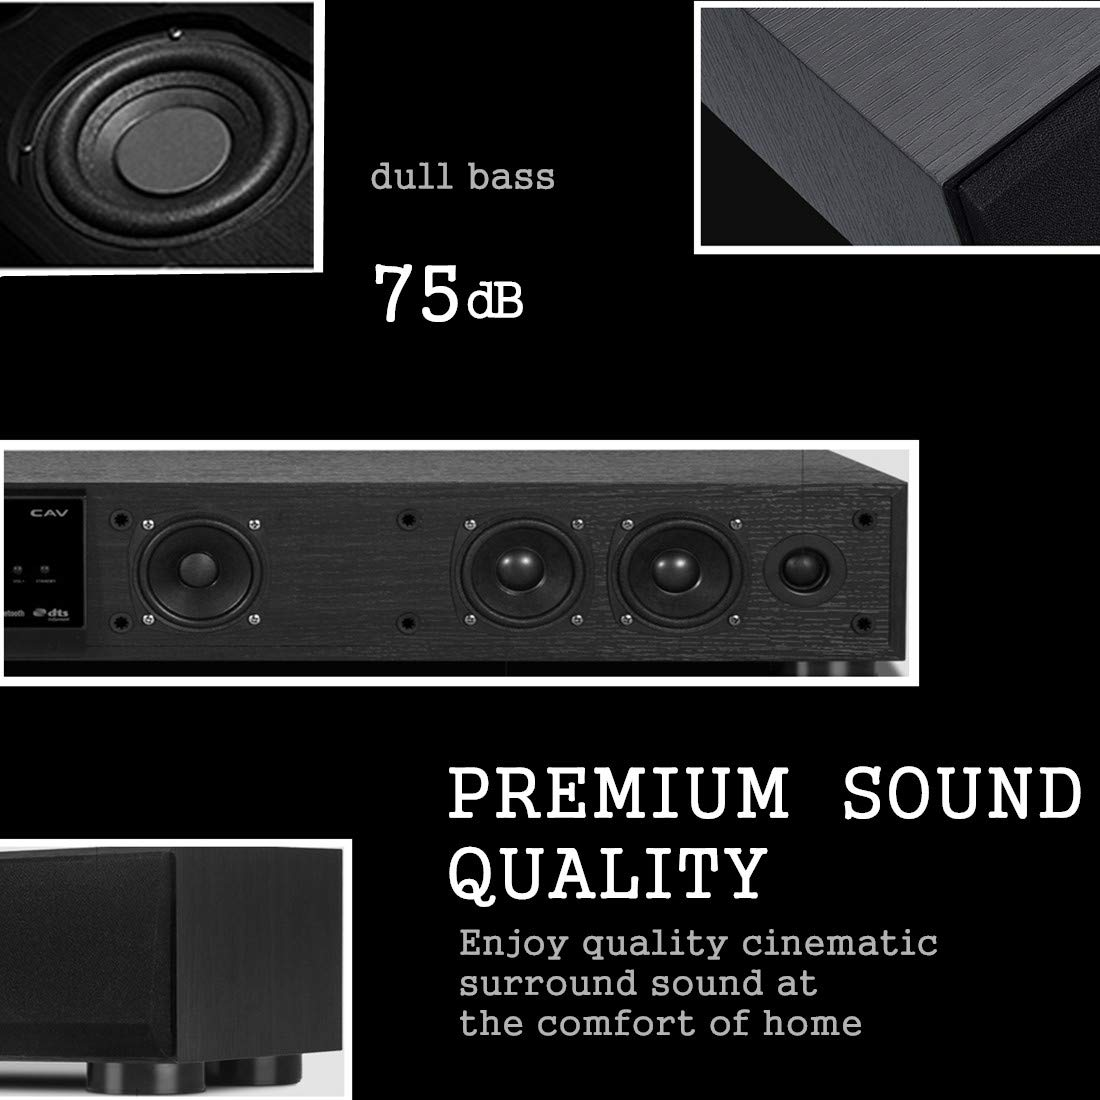 CAV 43.3 Inch Surround Soundbar Speaker 3.1 Channel Bluetooth Center Speaker,Built-In Subwoofer Deep Bass Powered Speaker Wireless Remote Control for Home Family PC TV-TM1100